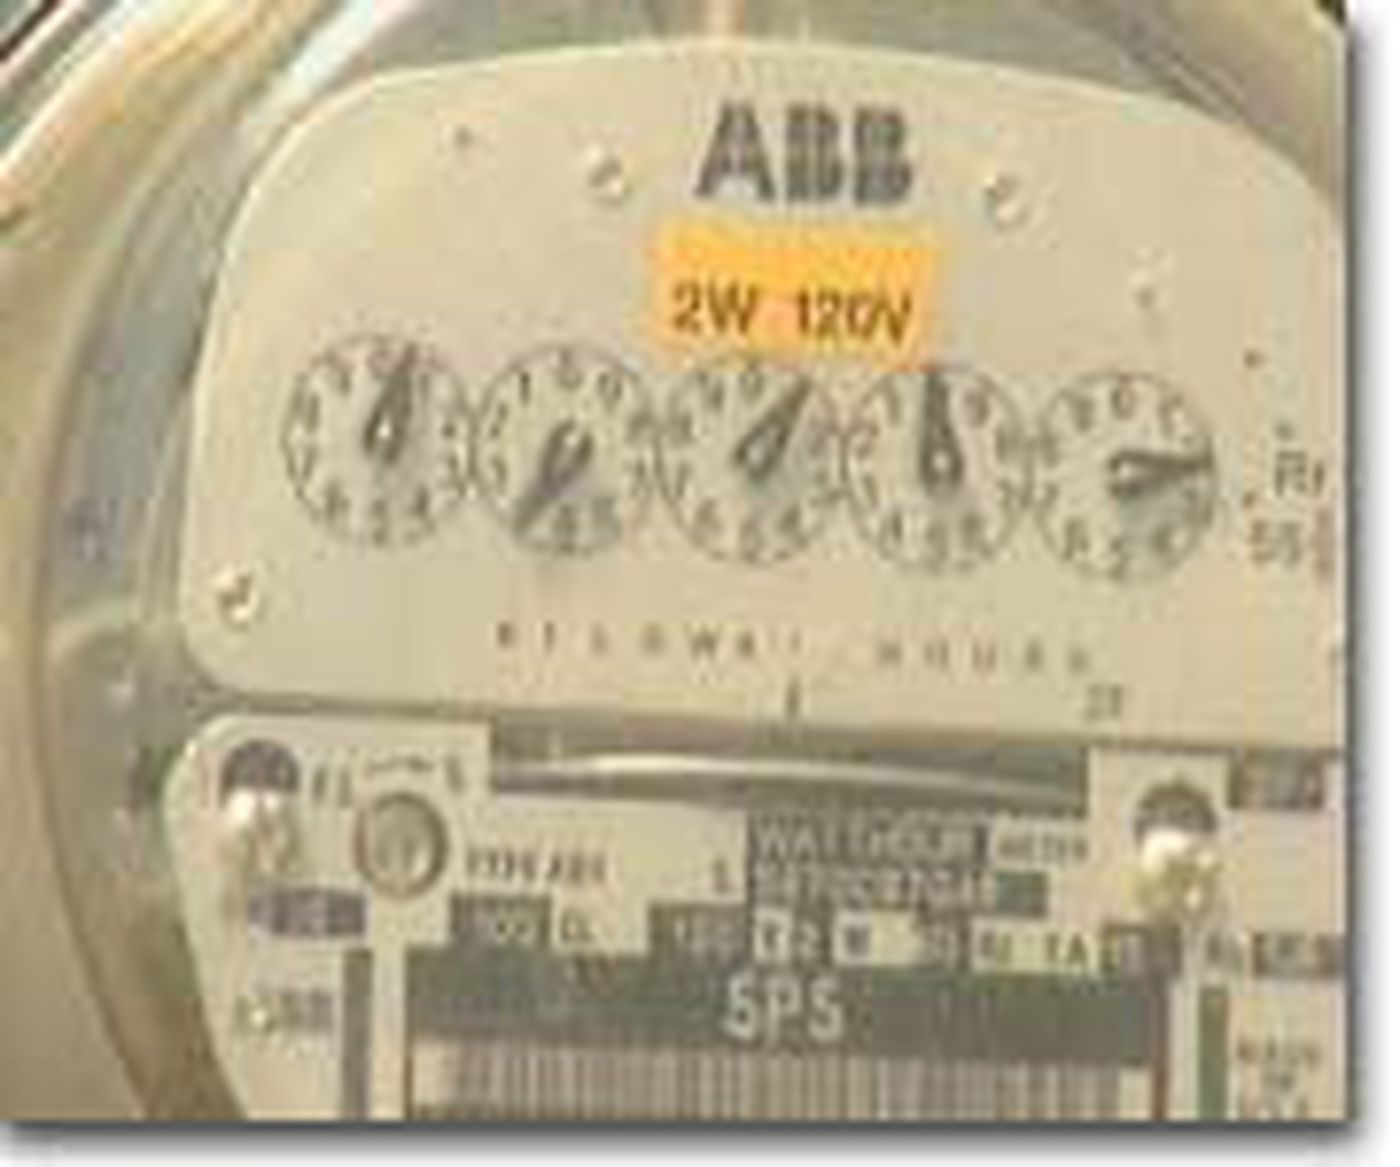 Electricity Theft Affects Not Just Xcel, But All Customers Too